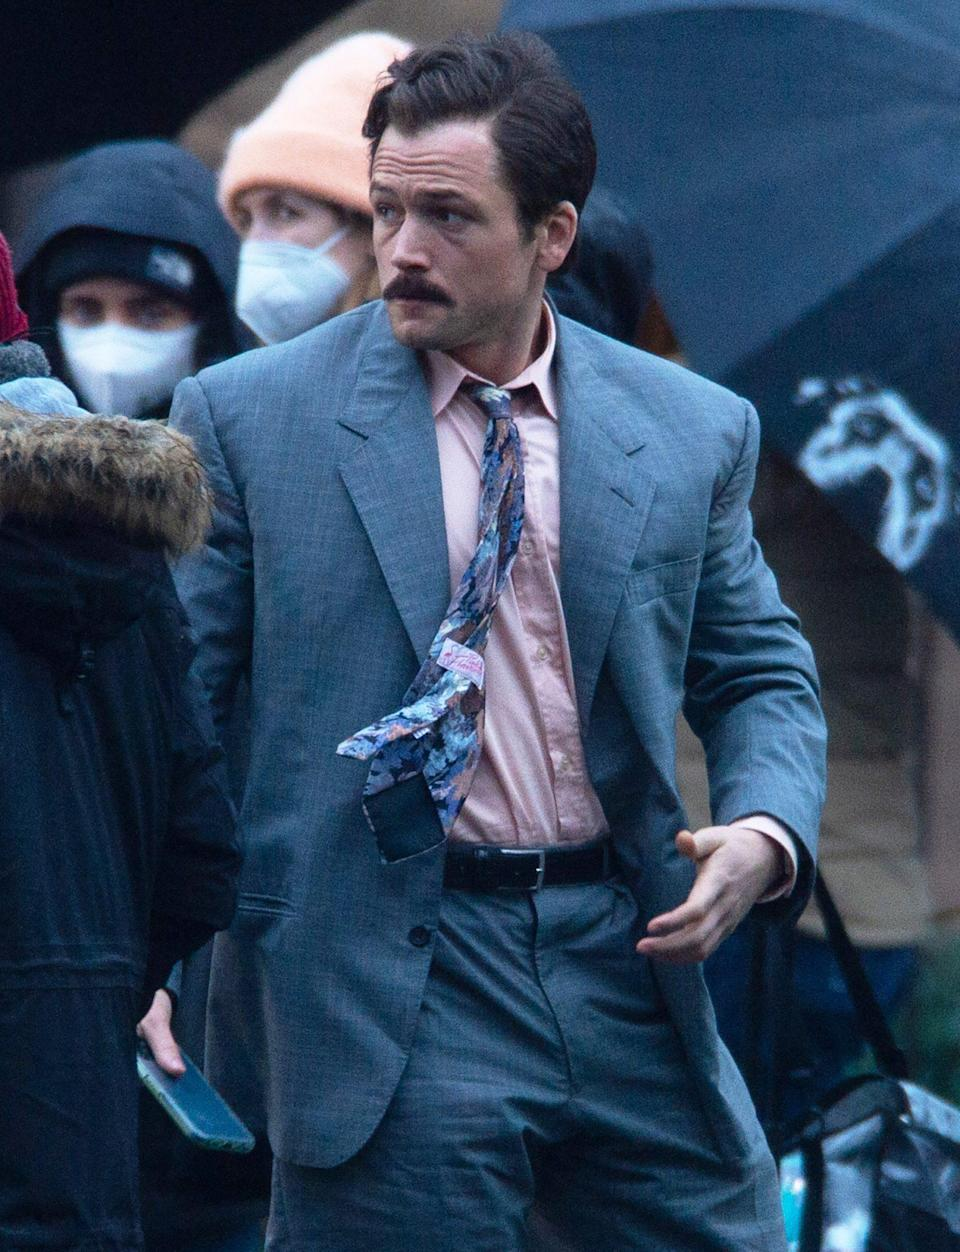 <p>Taron Egerton films scenes for his upcoming movie <em>Tetris</em> in Glasgow, Scotland, on Friday.</p>